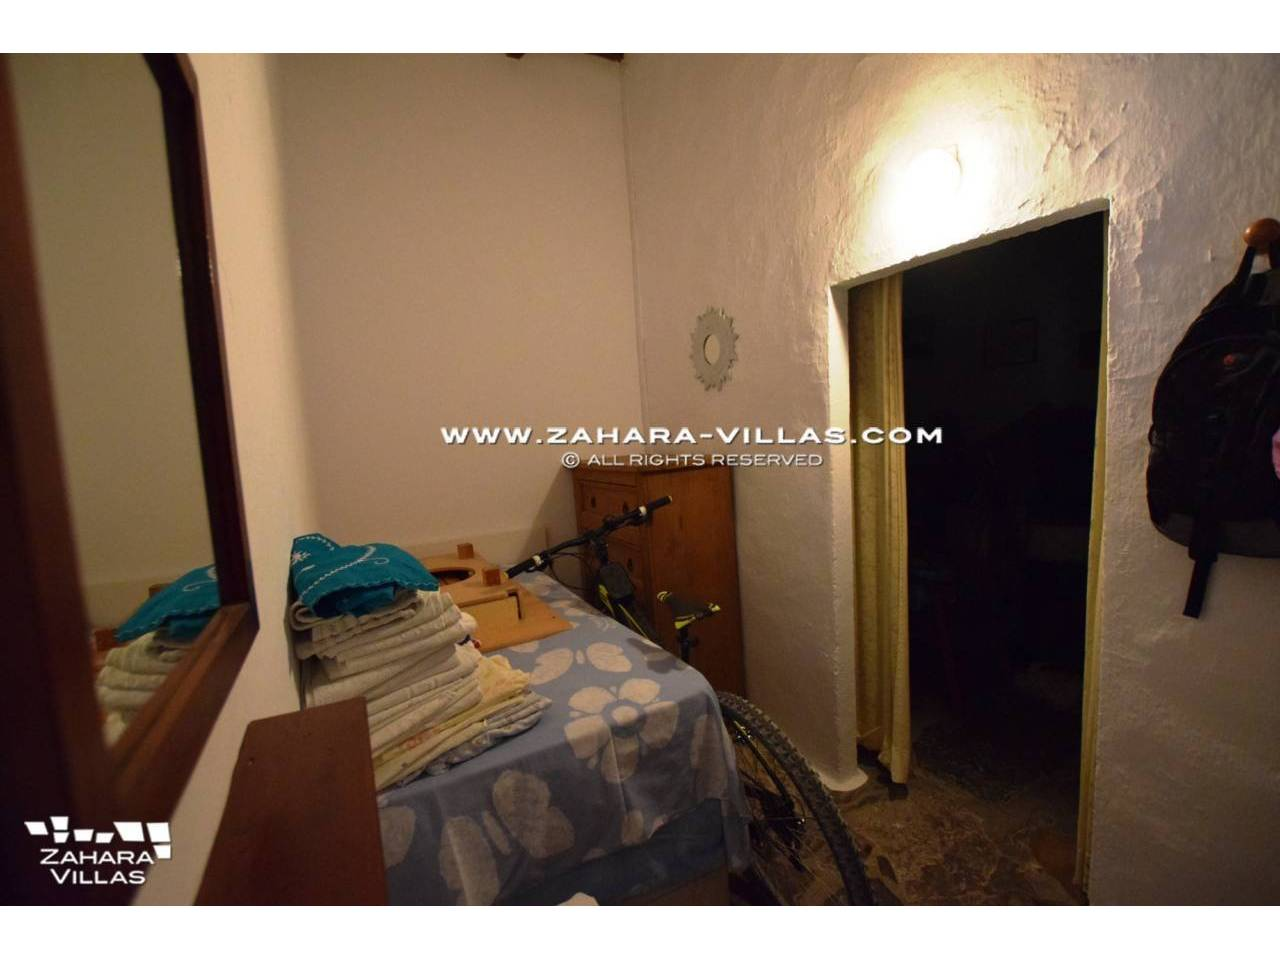 Imagen 6 de House in Avda. Del Pradillo for sale in the town of Zahara de los Atunes